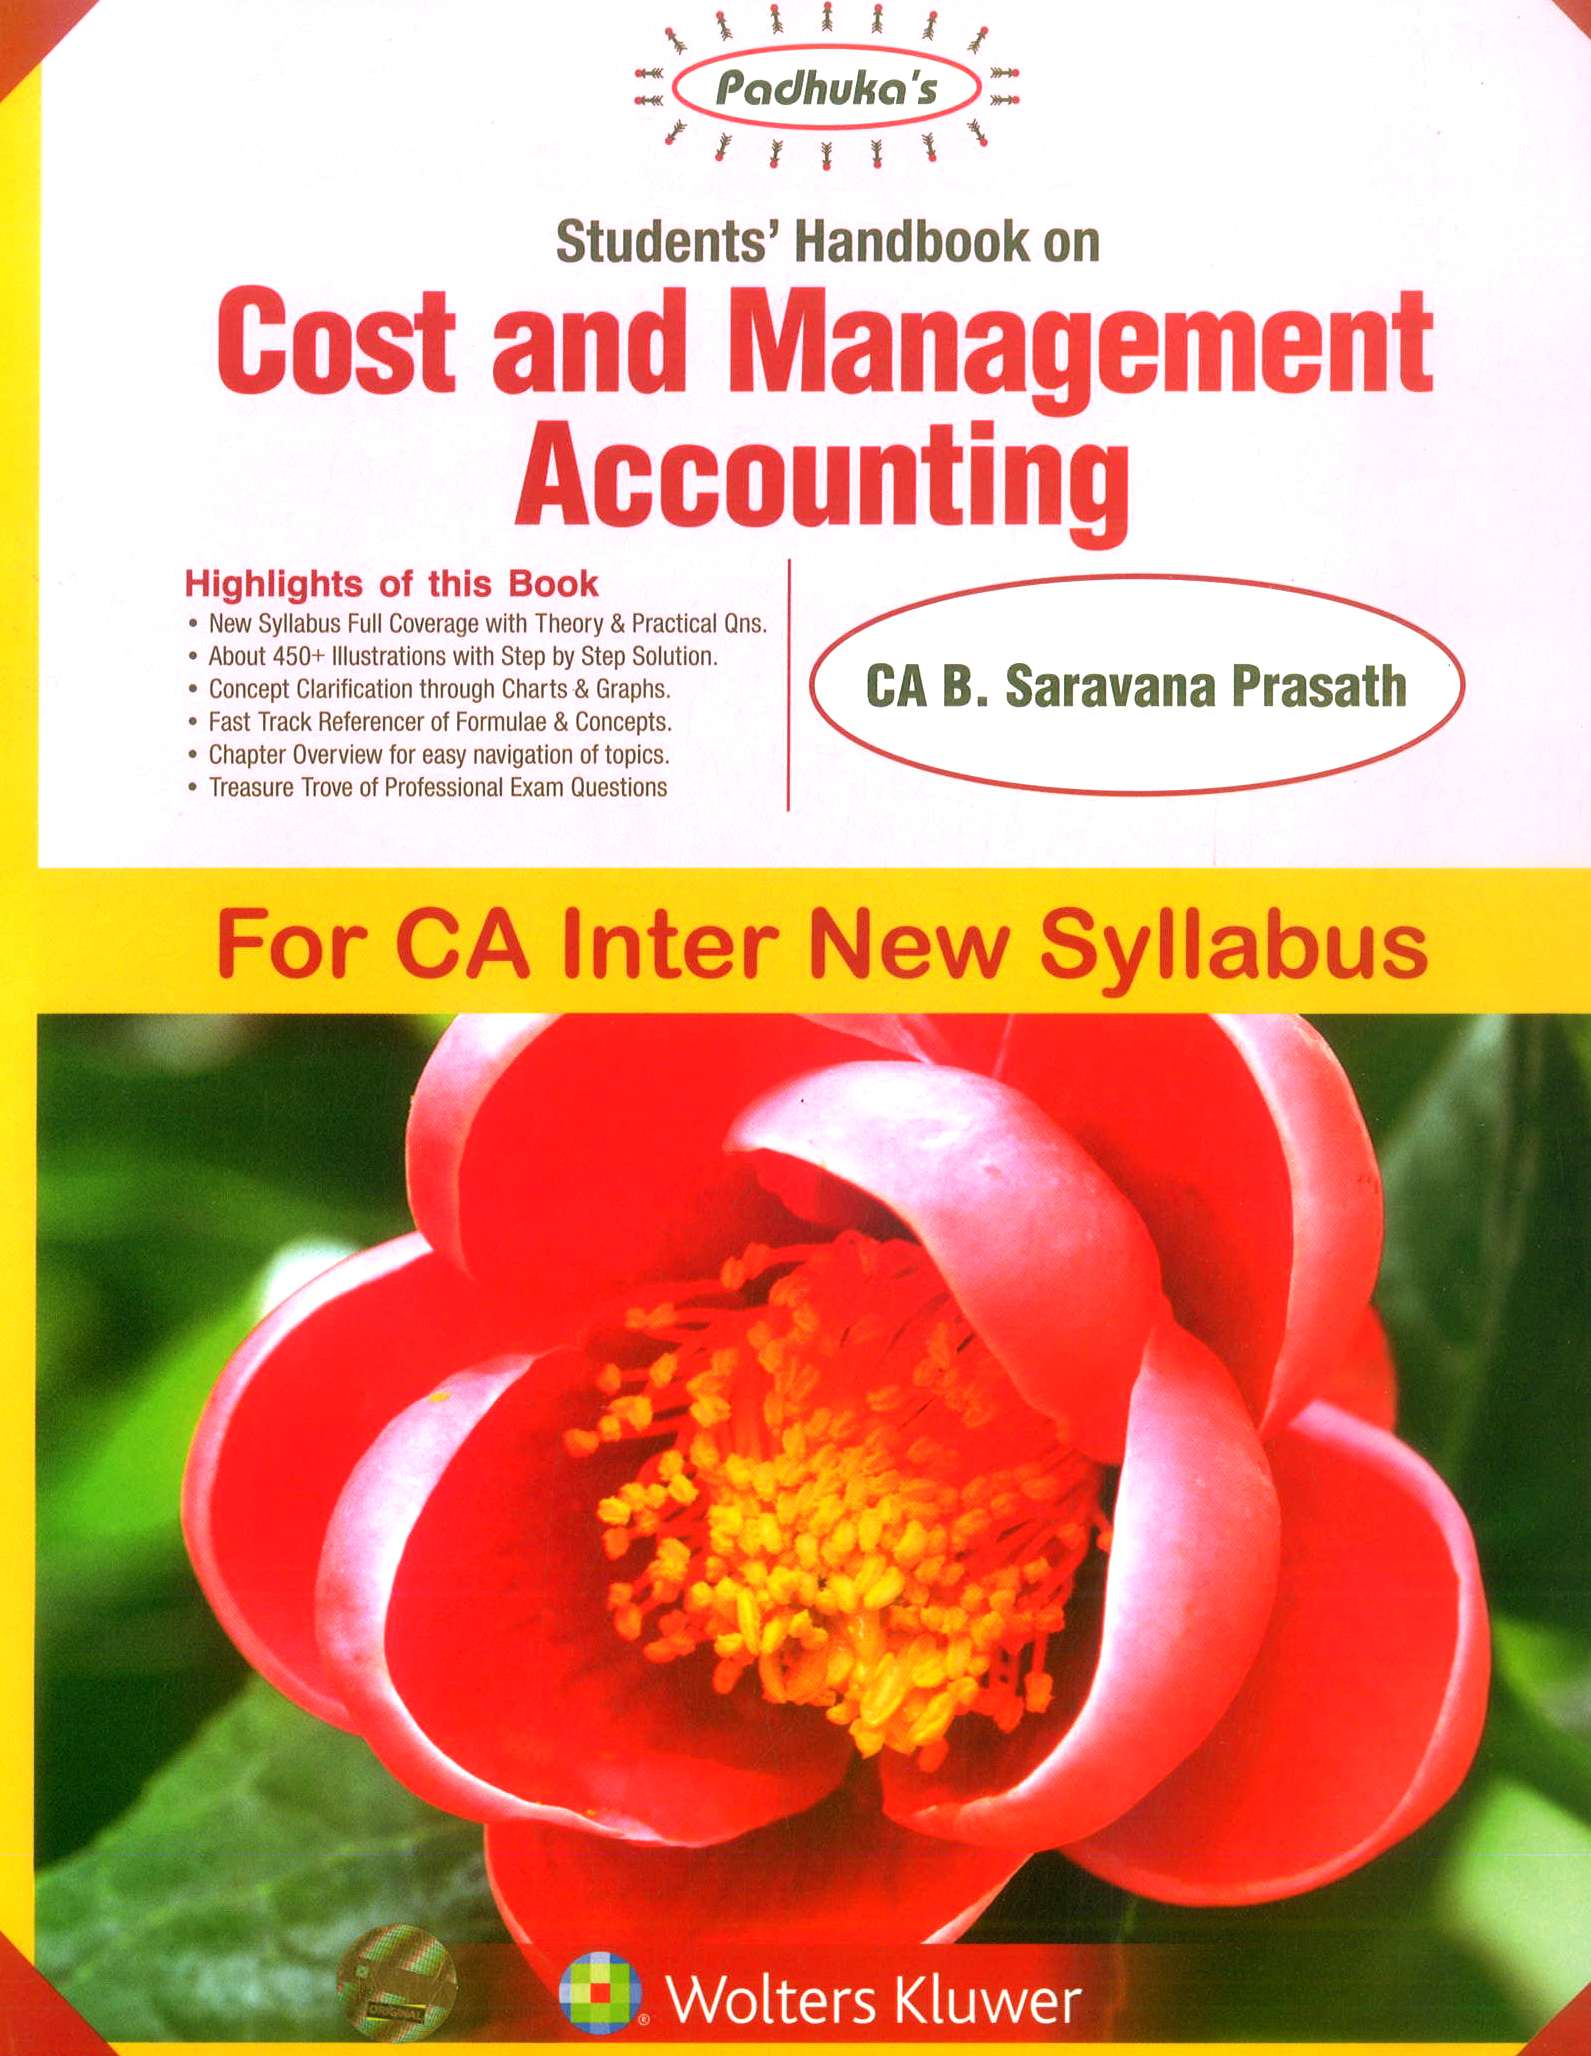 Padhuka Students' Handbook on Cost and Management Accounting By Ca B Saravana Prasath (Author) for May 2019 Exam (Wolters Kluwer Publishing)